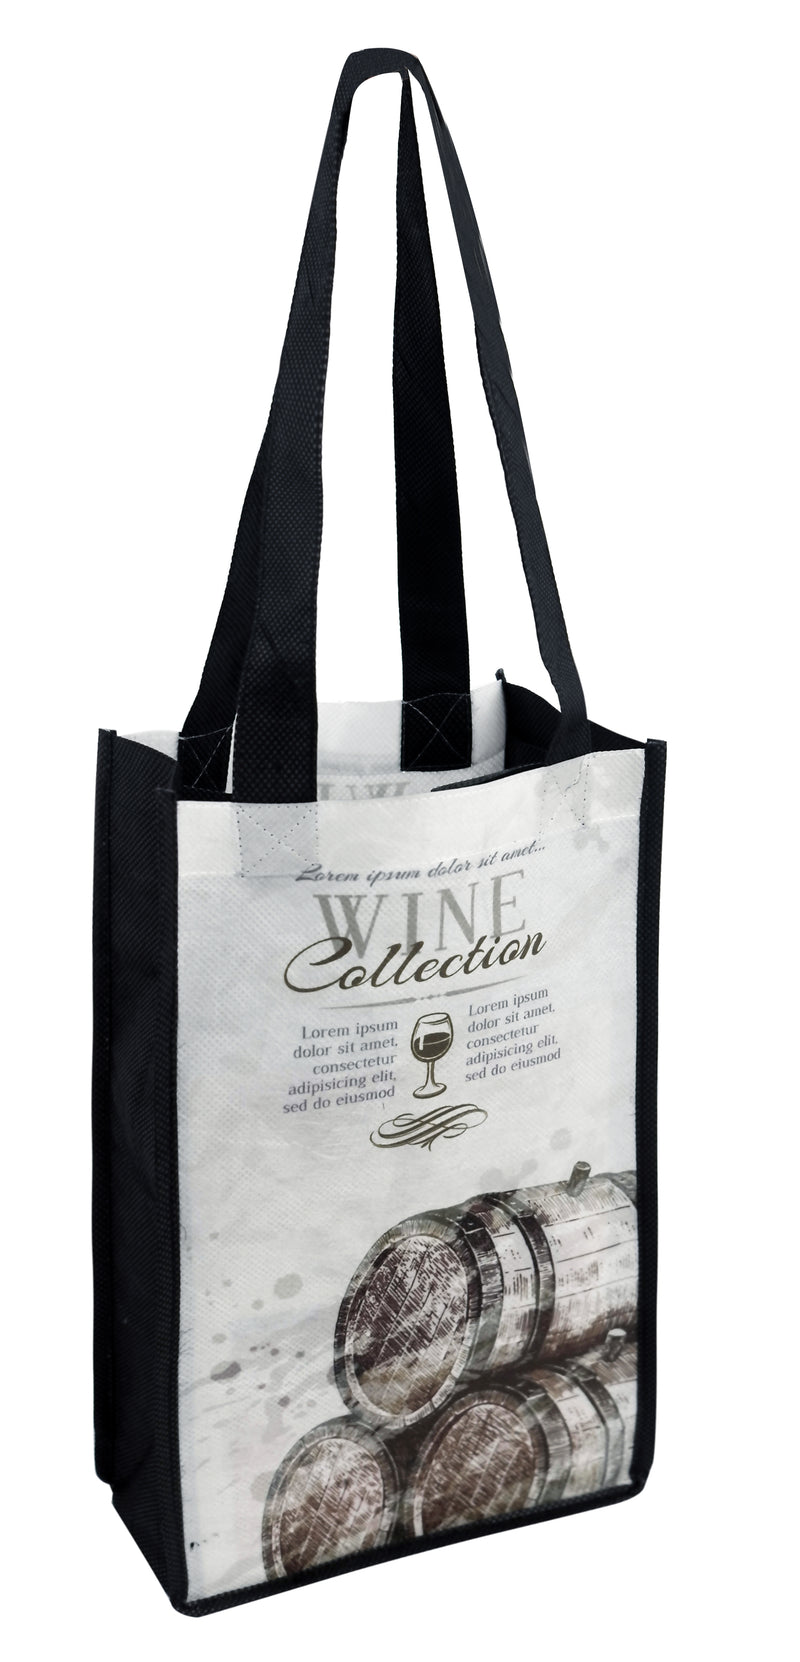 "Wine Bottle Bags Reusable With Custom Printing - 2 Bottles - 7""W X 12""H X 3.5""D"